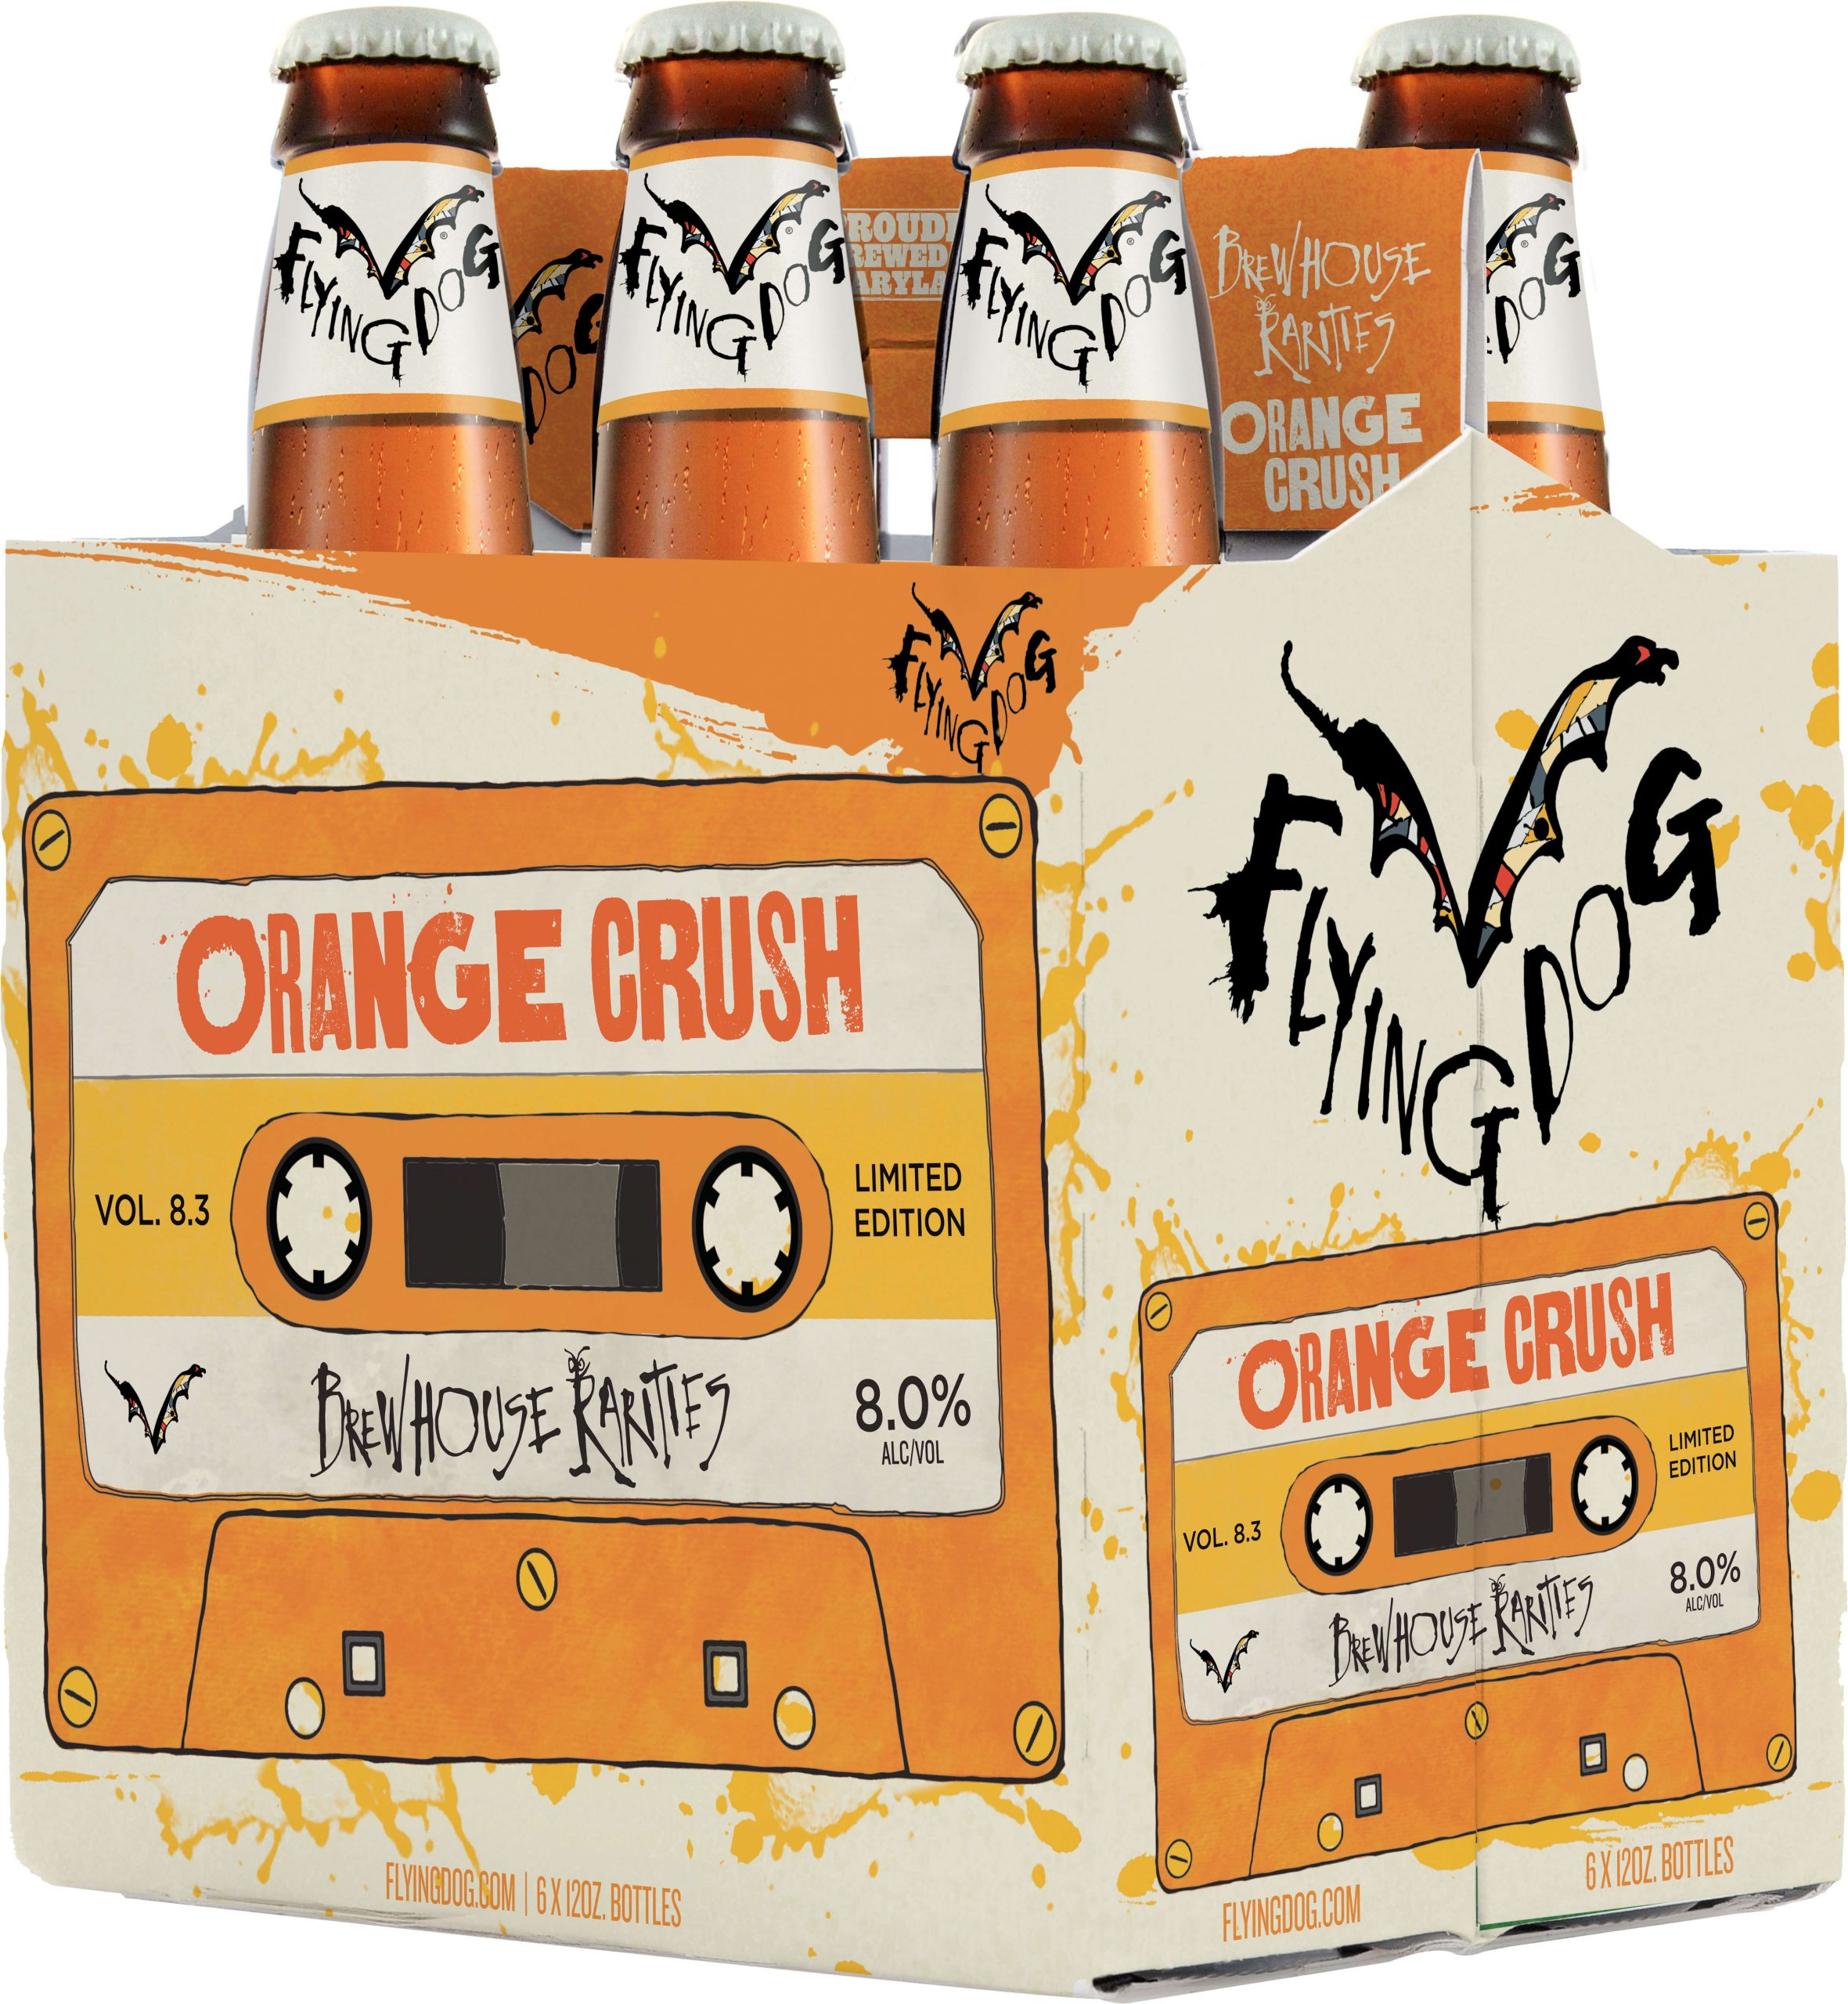 Packaging for six packs of 12 oz. bottles of the Orange Crush by Flying Dog Brewery